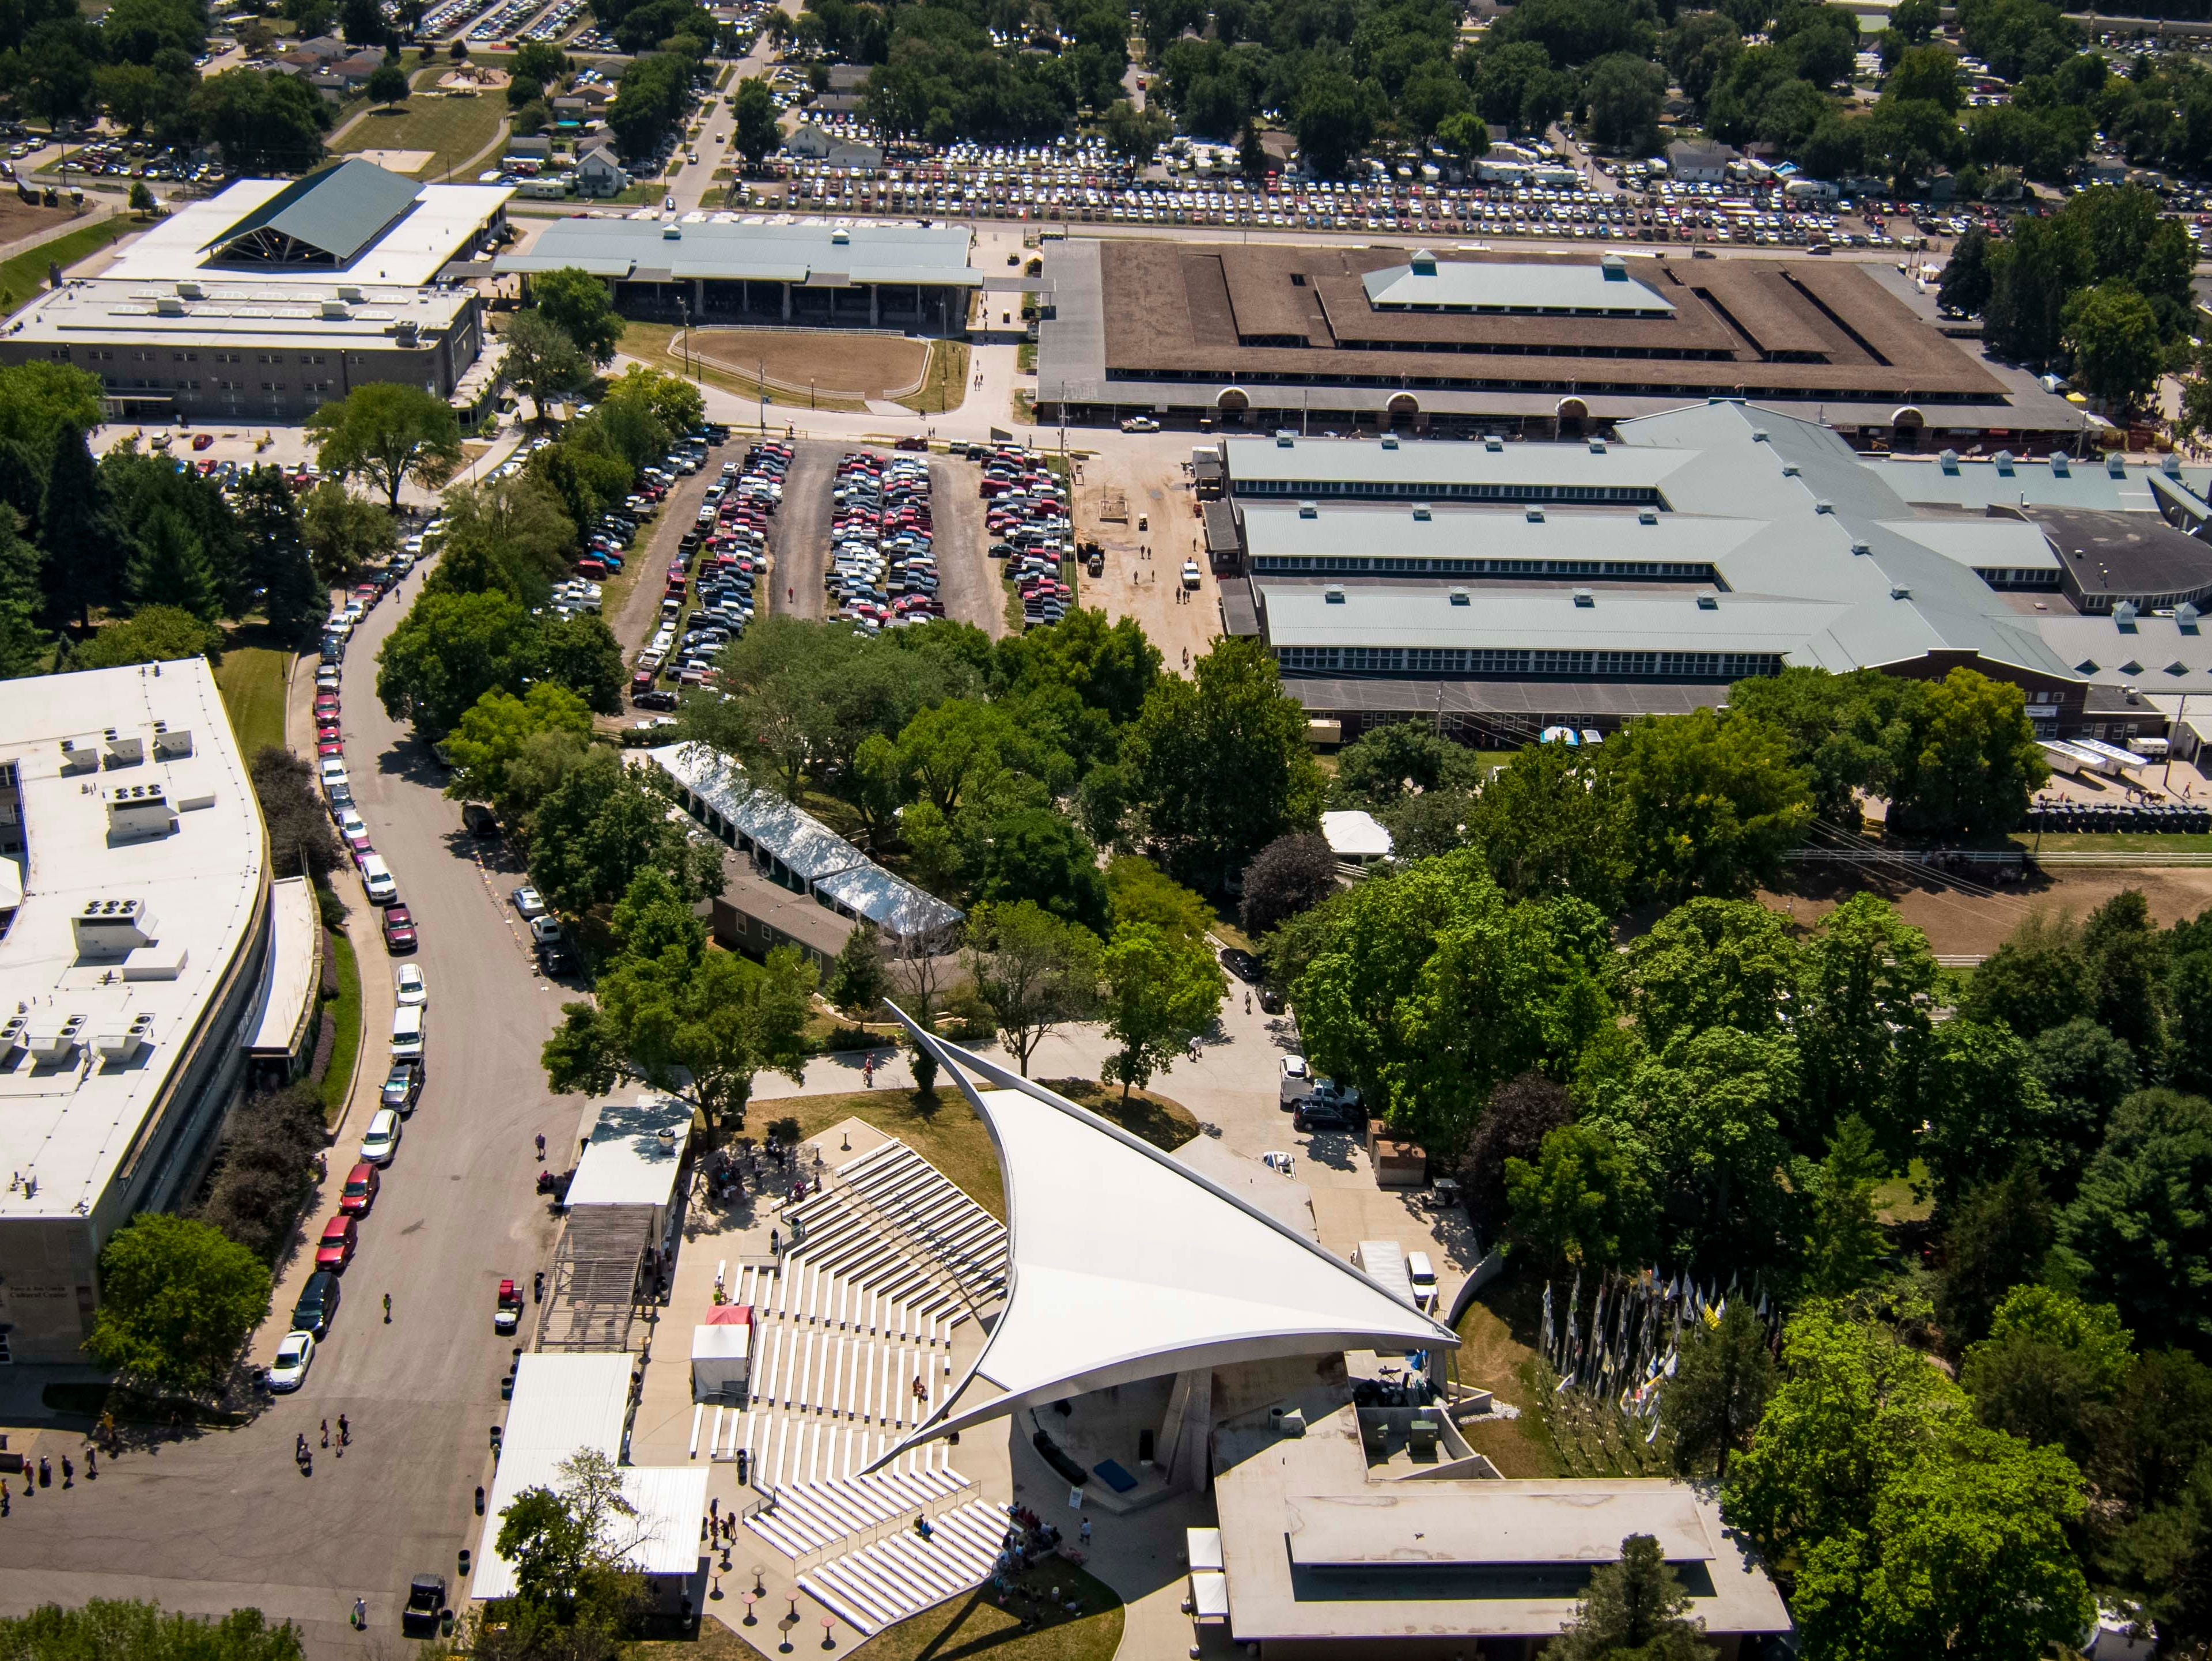 Aerial view of the southeast corner of the fairgrounds at the 2018 Iowa State Fair in Des Moines Thursday, Aug. 9, 2018.